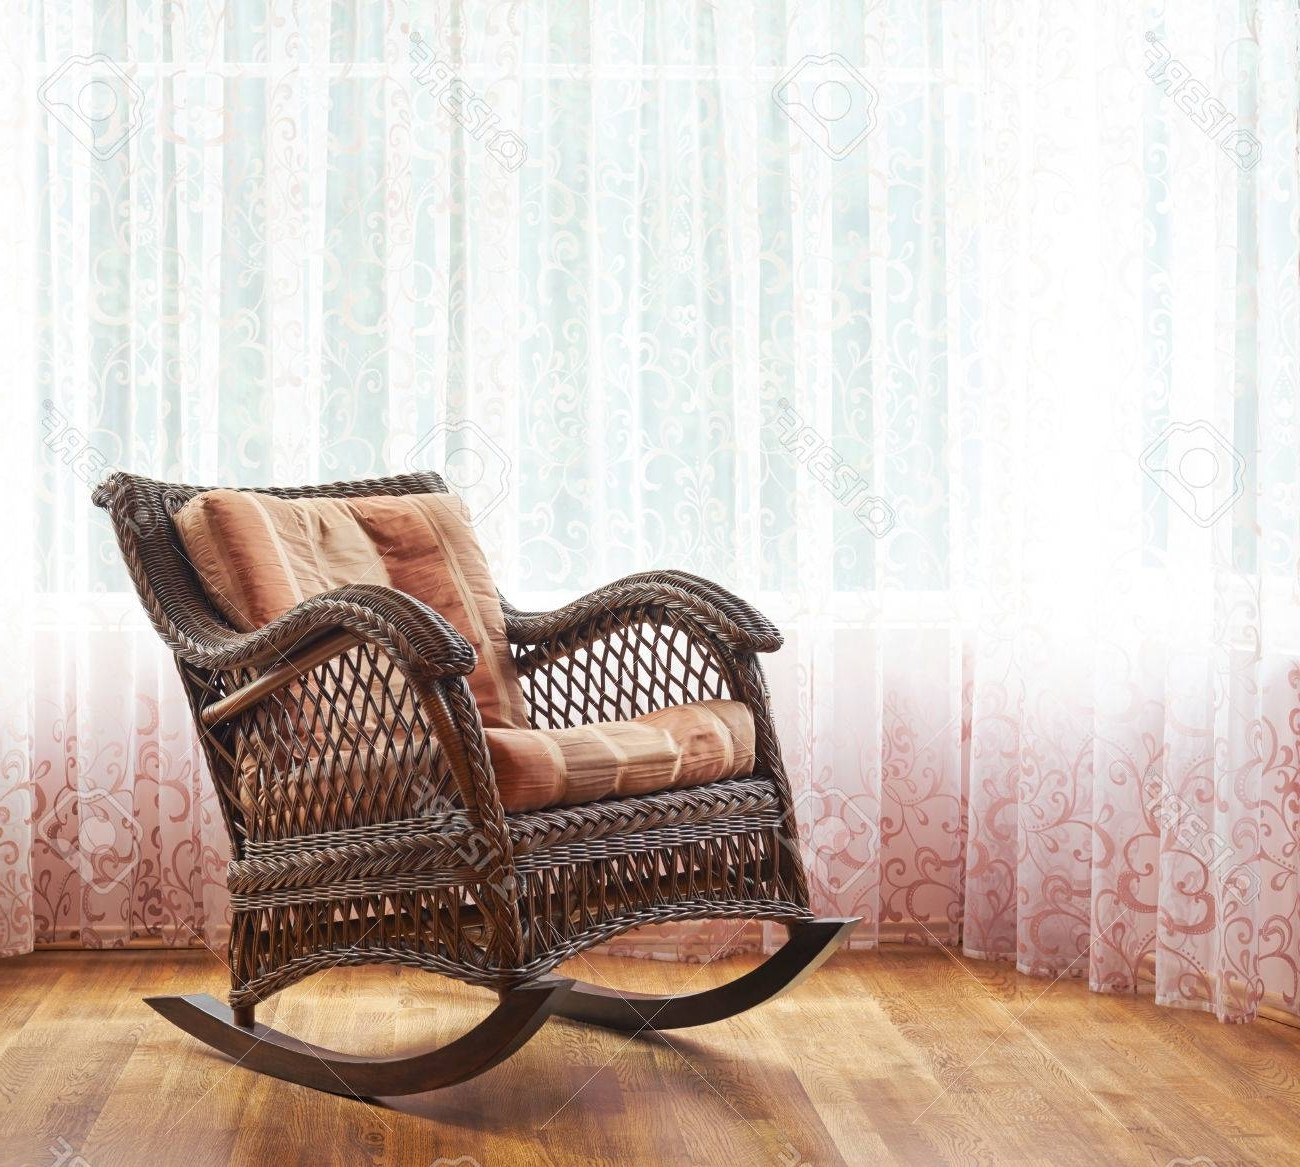 2017 Indoor Wicker Rocking Chairs For Brown Wicker Rocking Chair Against The Window's Curtains, Indoor (View 1 of 15)